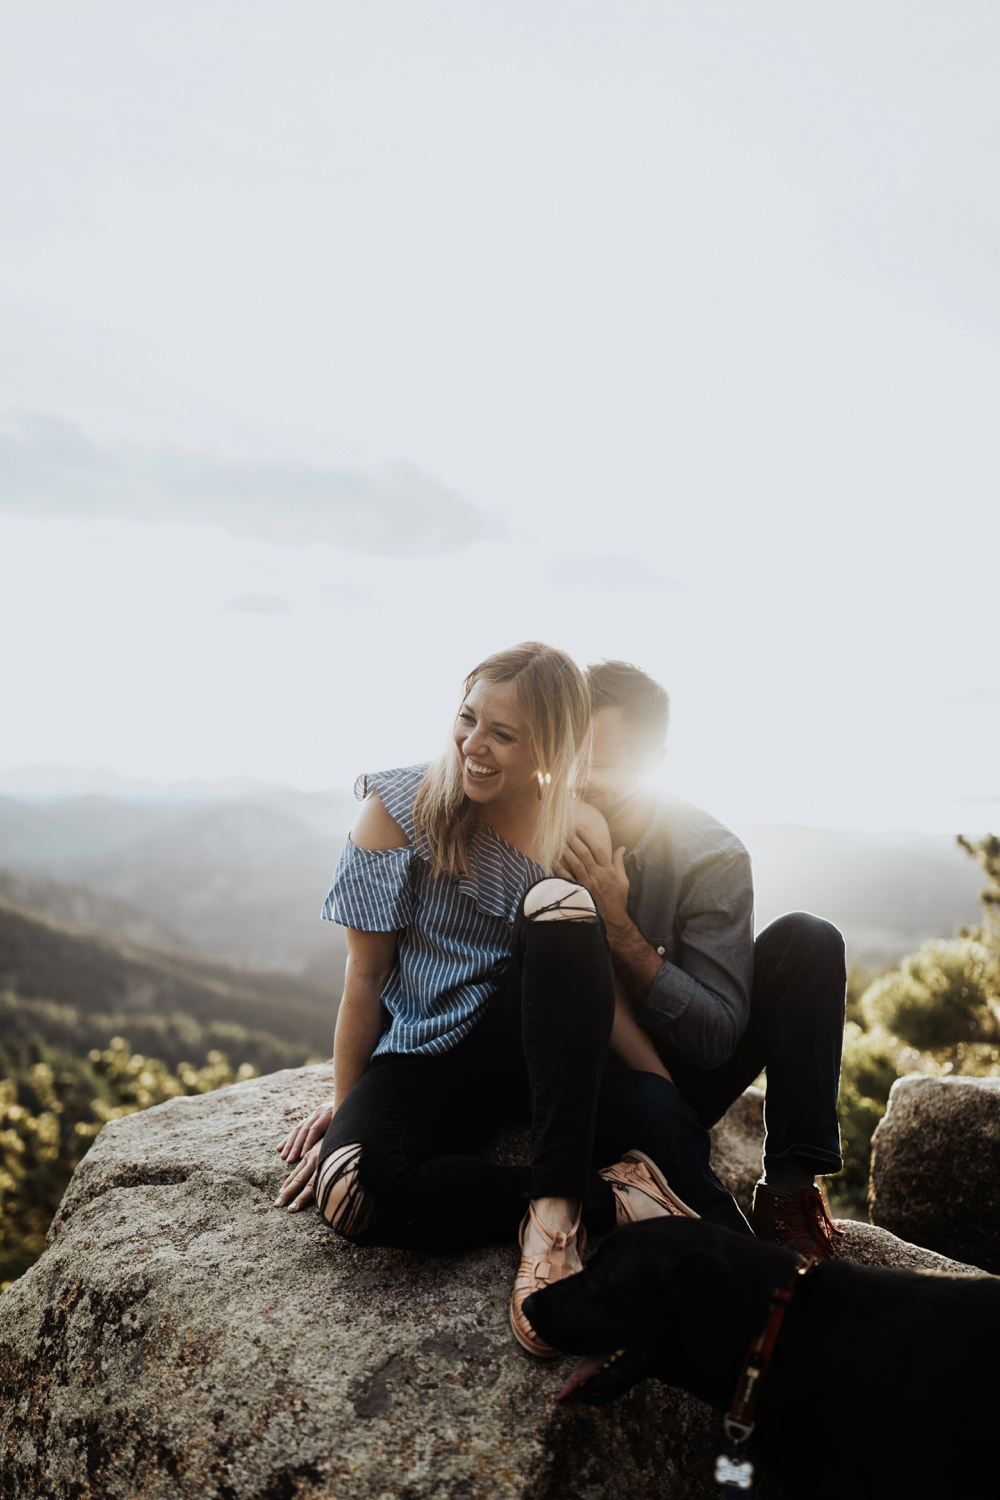 Colorado-Mountain-Couples-Adventure-Session_MJPHOTO-56.jpg